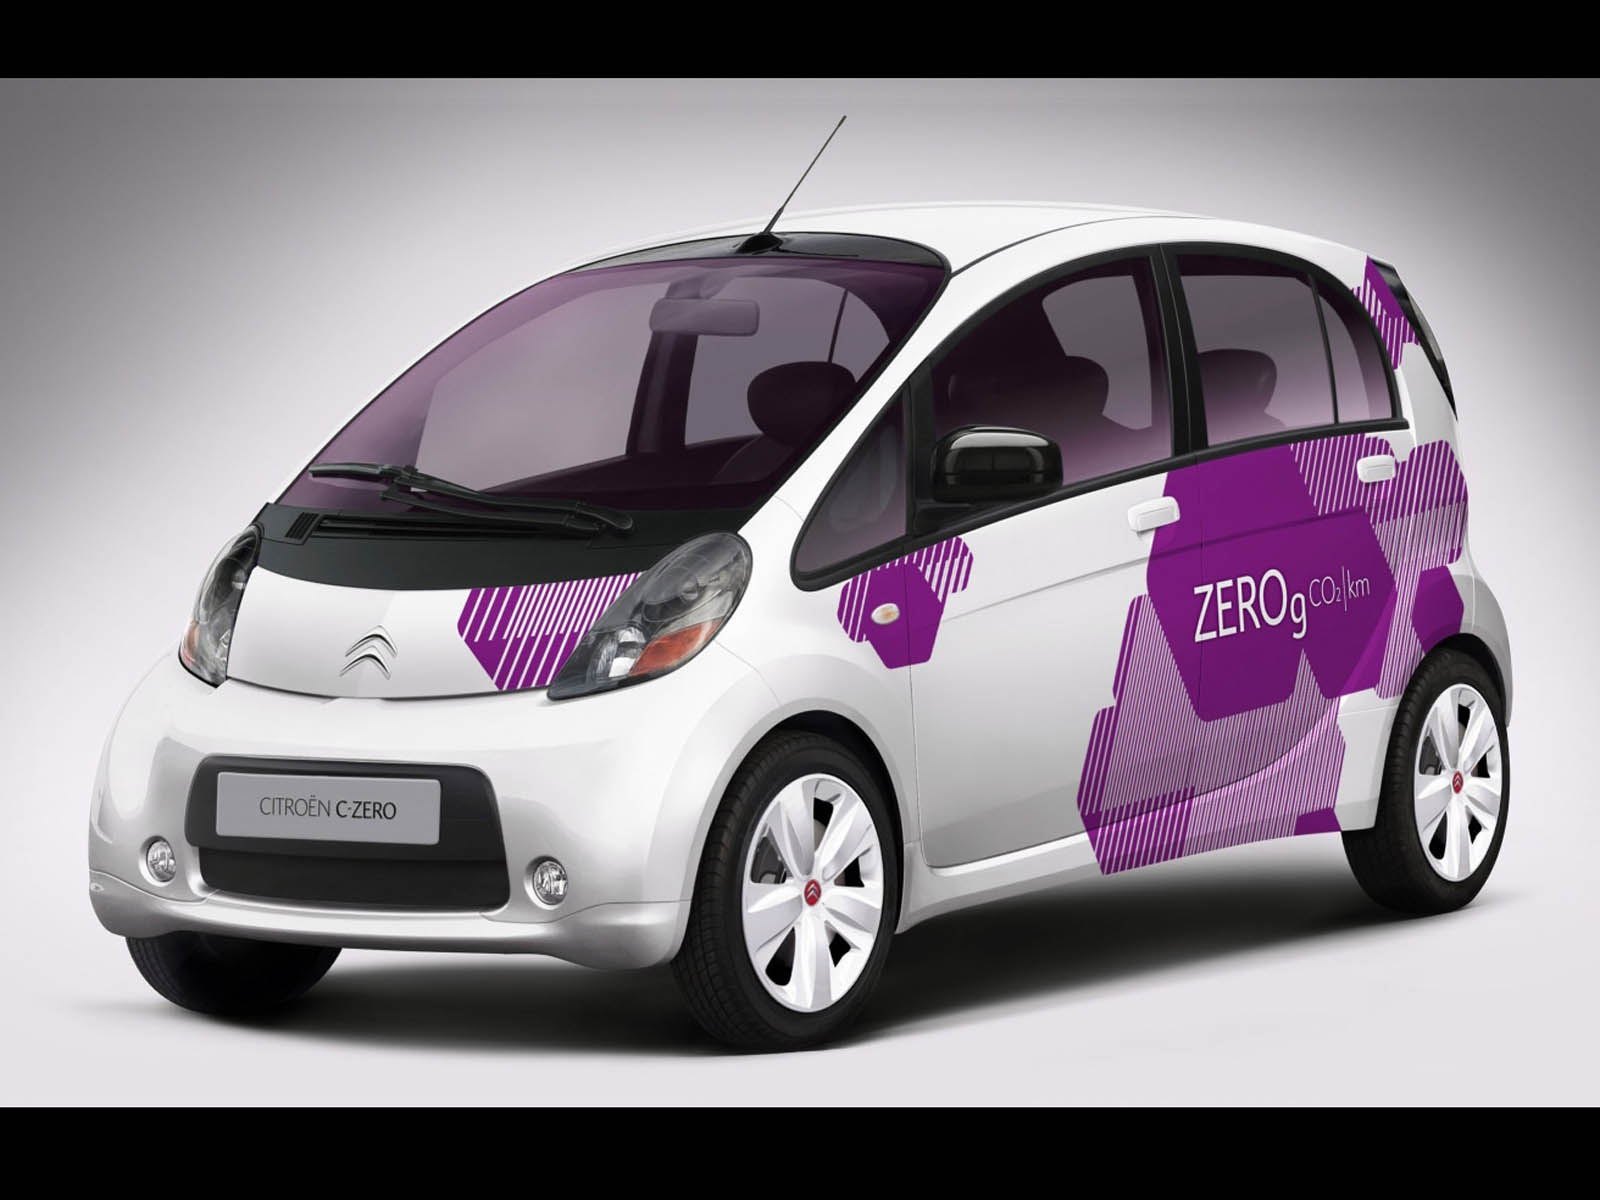 wallpapers citroen c zero car wallpapers. Black Bedroom Furniture Sets. Home Design Ideas